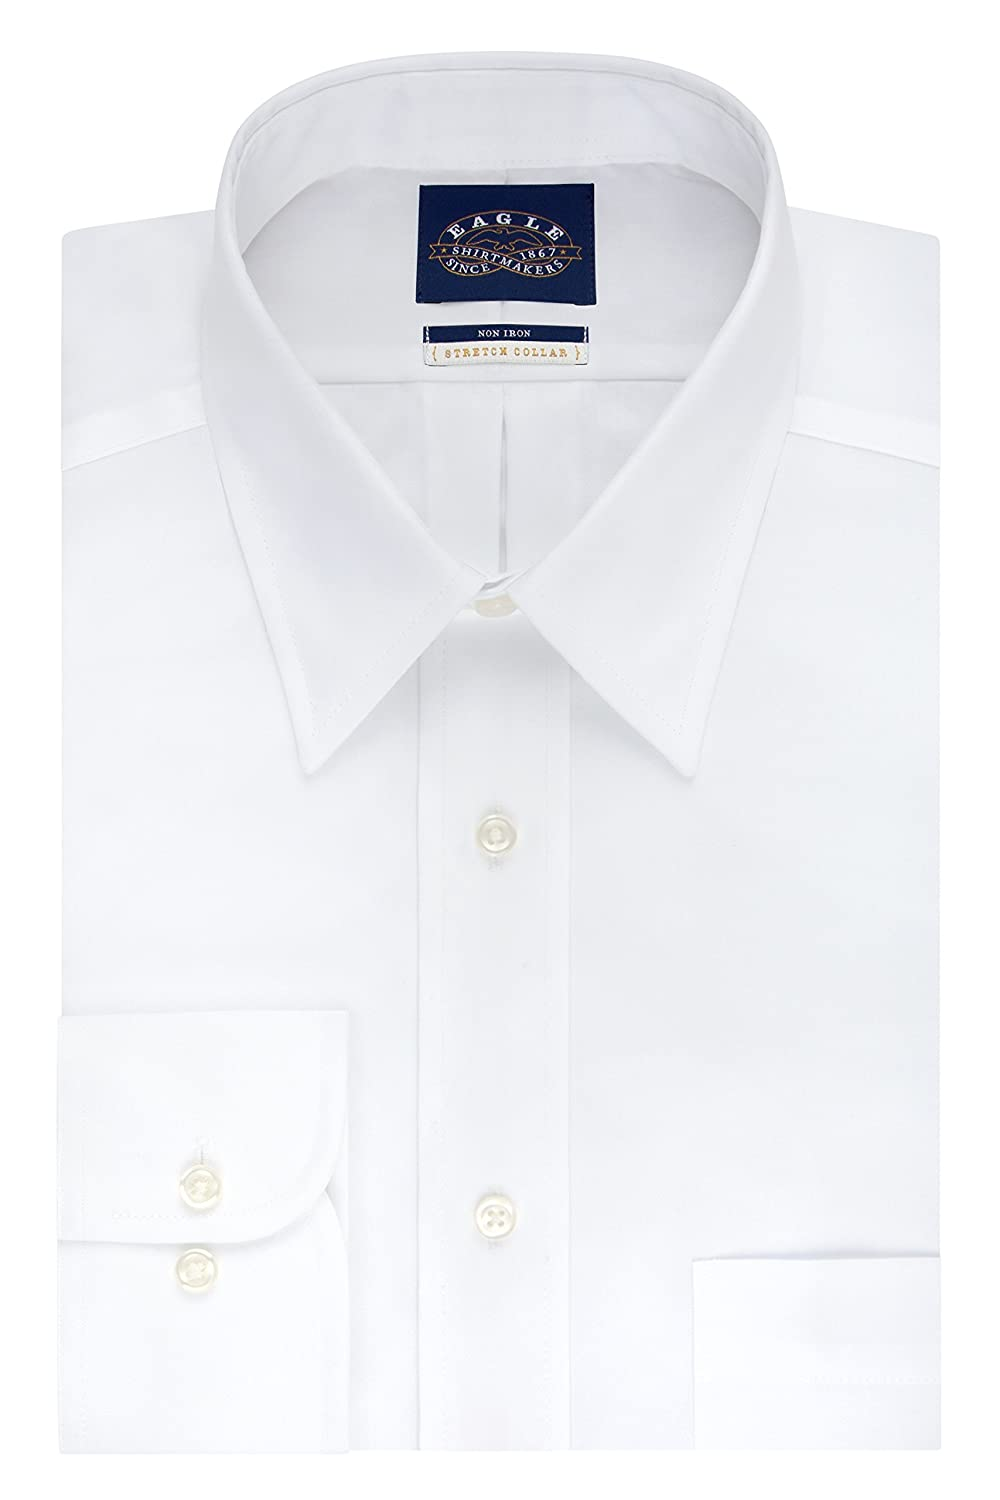 Eagle Mens BIG FIT Dress Shirts Non Iron Stretch Collar Solid Big and Tall